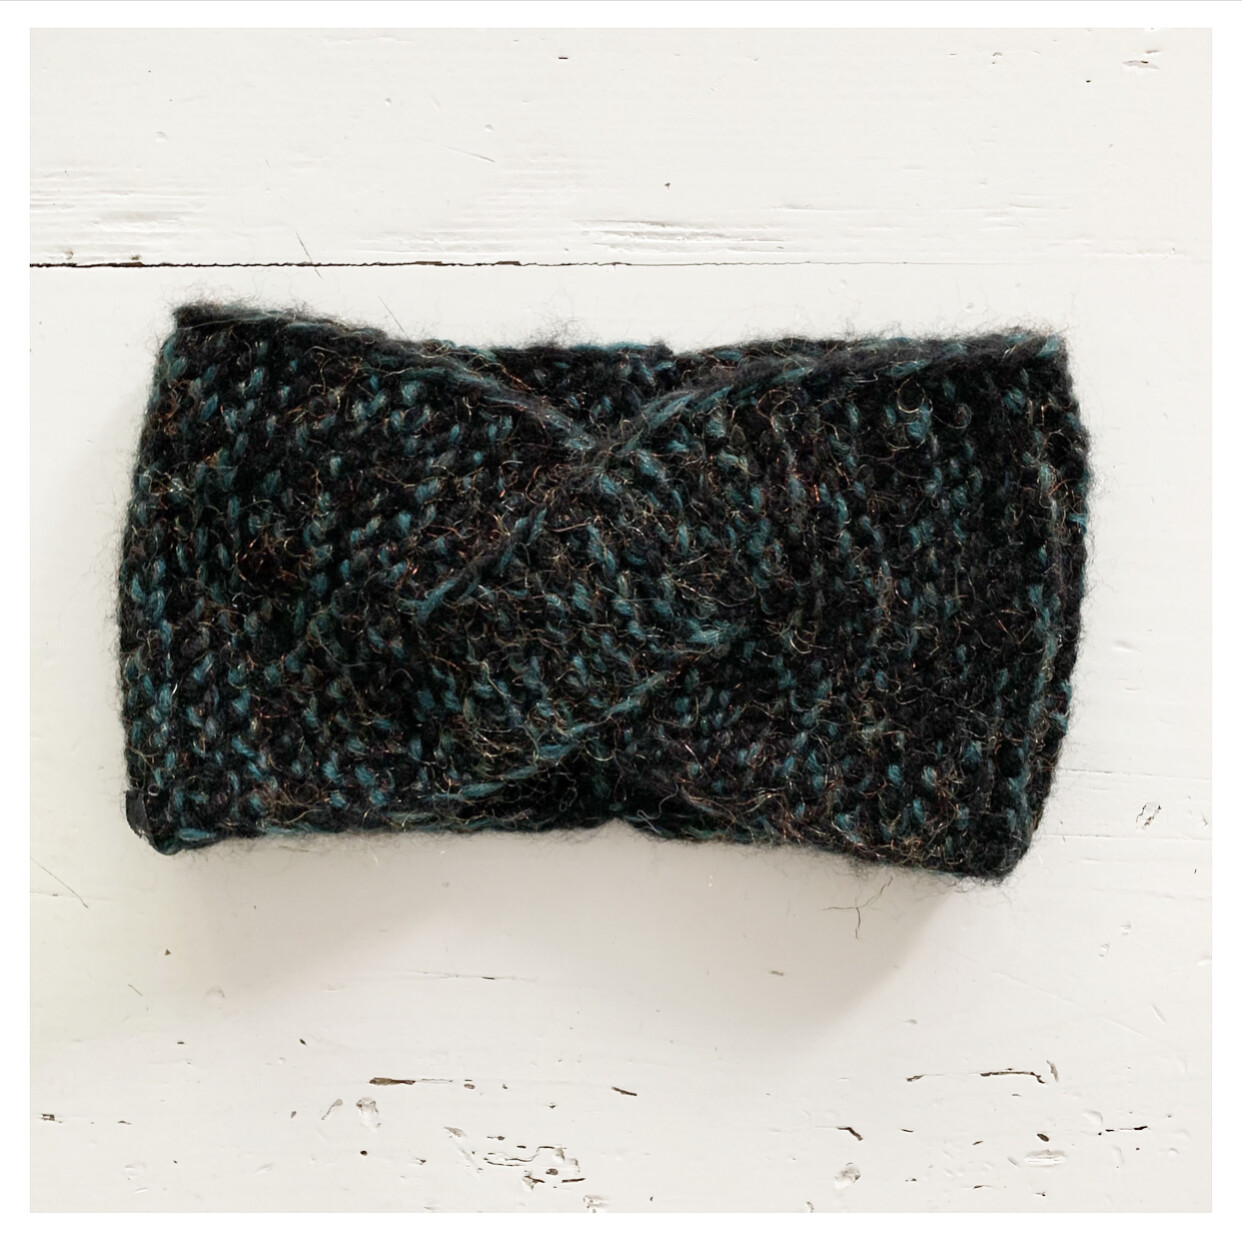 Green and Drak Grey Headband II